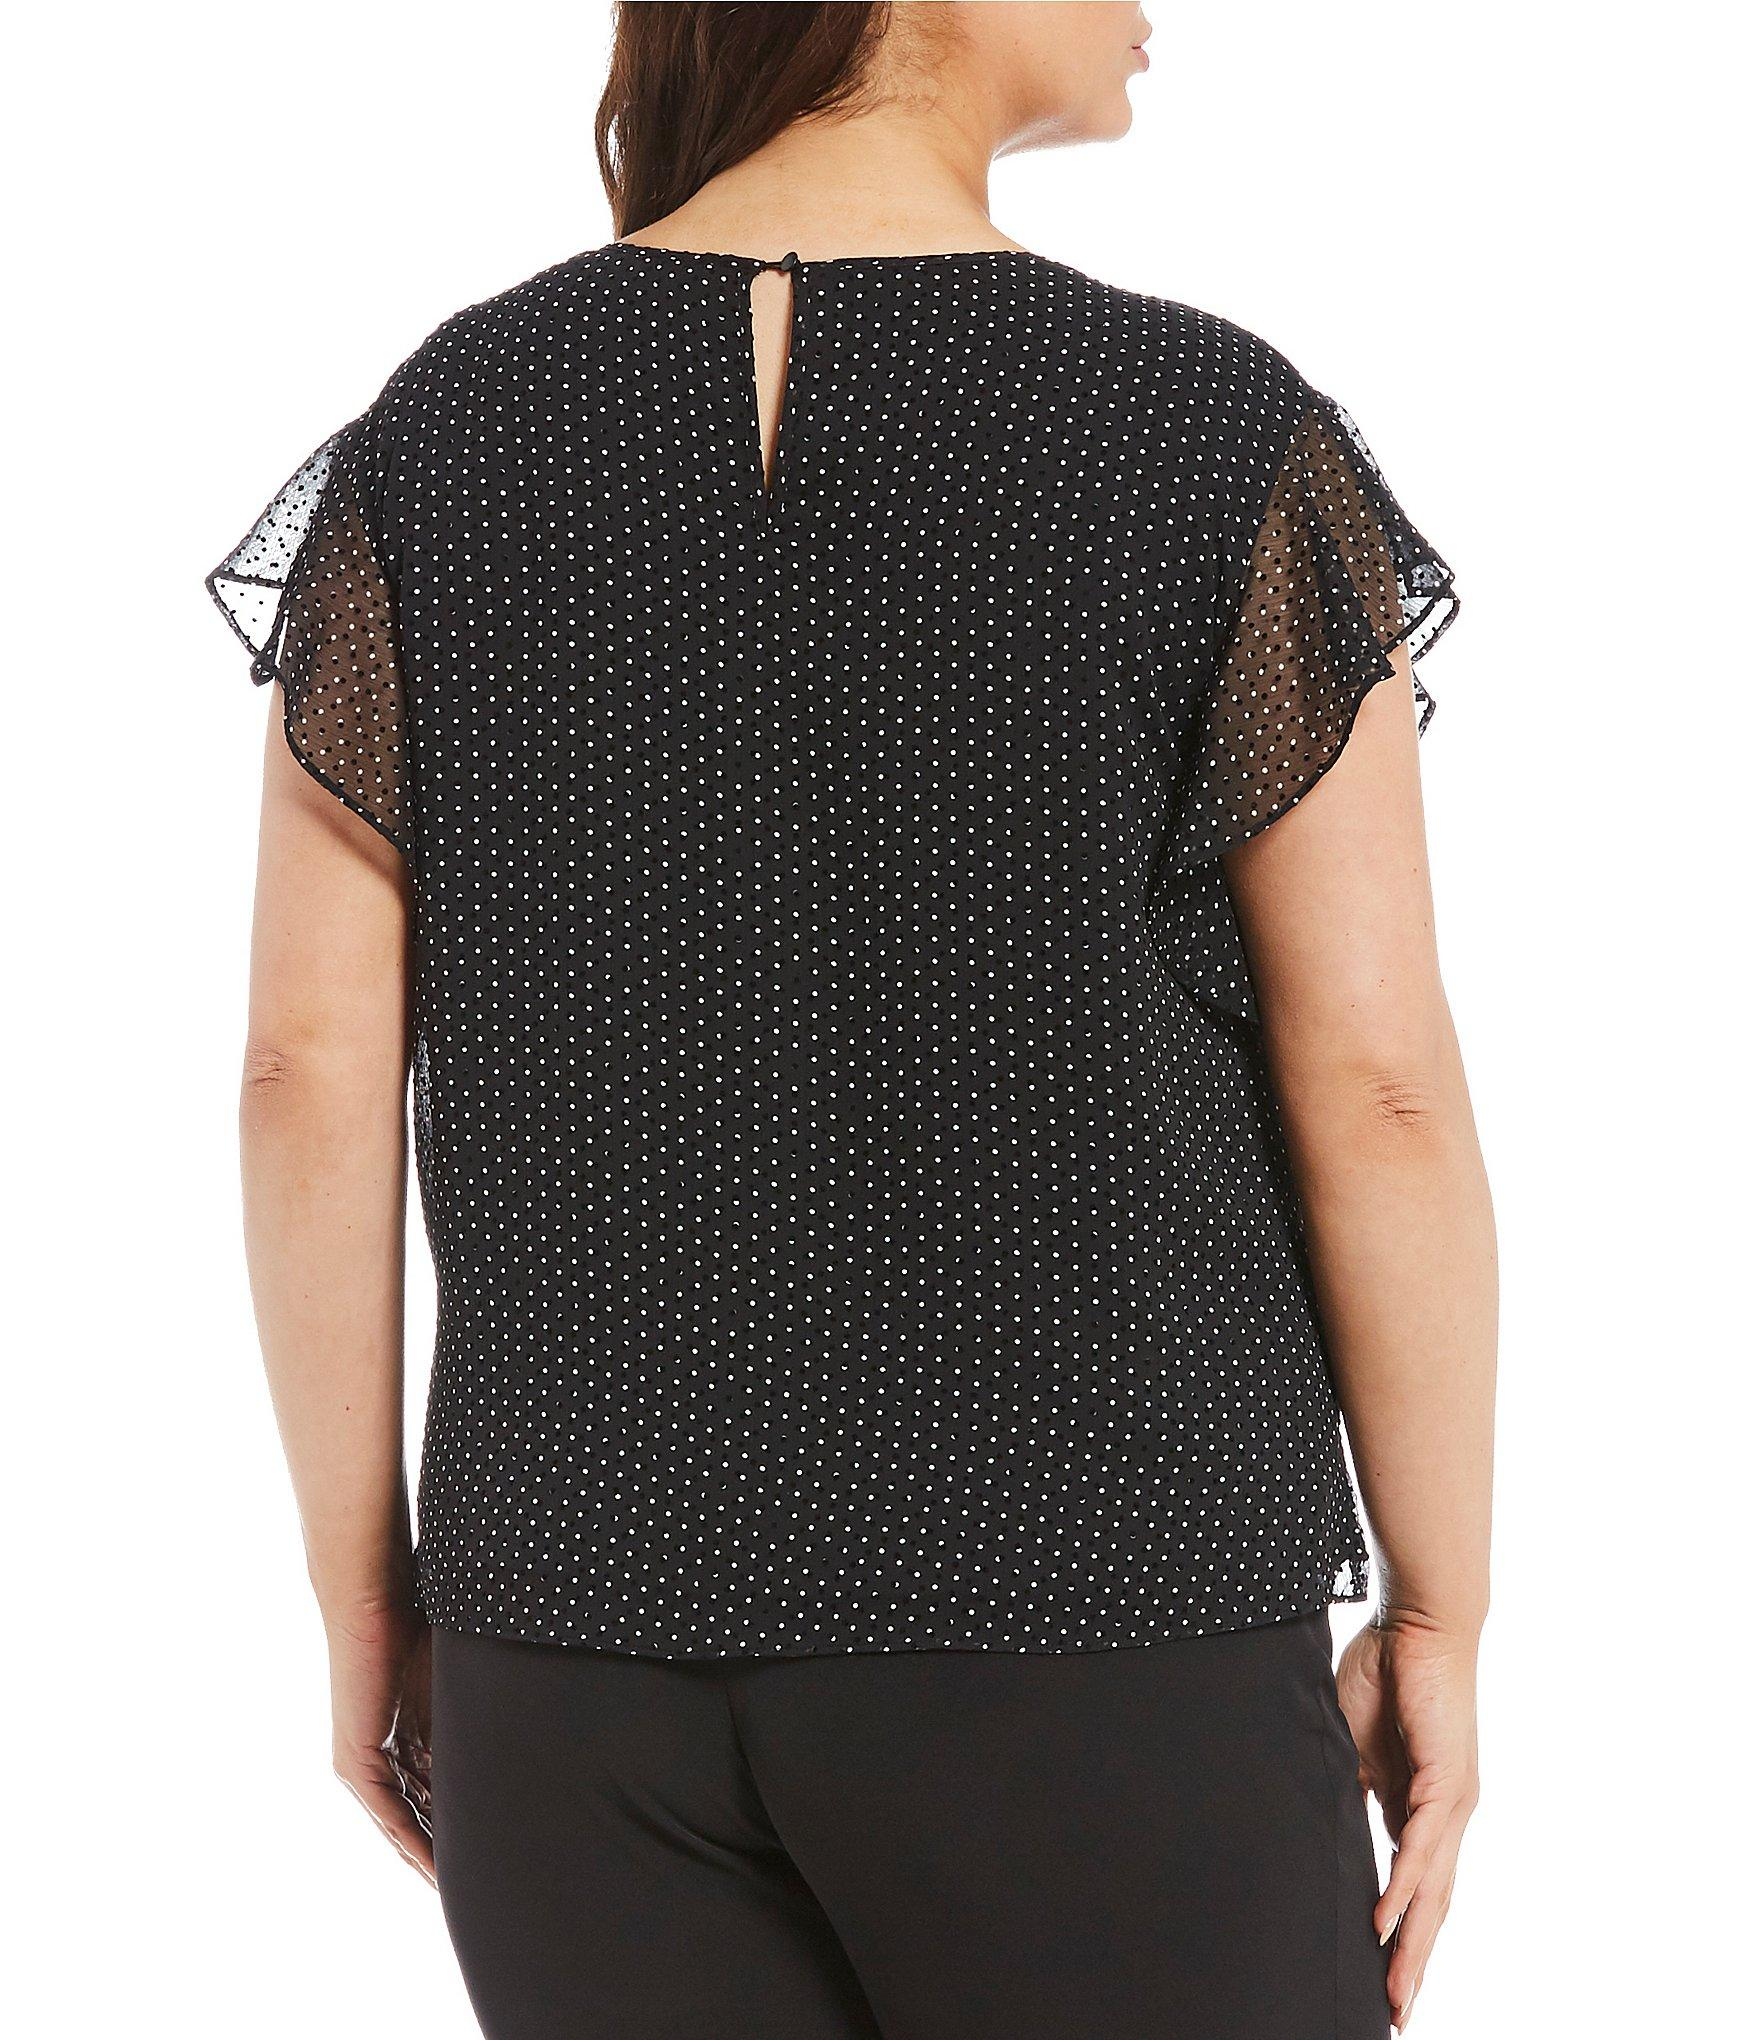 ffb7bd91d93 ... Plus Size Flutter Sleeve Ruched Neck Polka Dot Blouse - Lyst. View  fullscreen